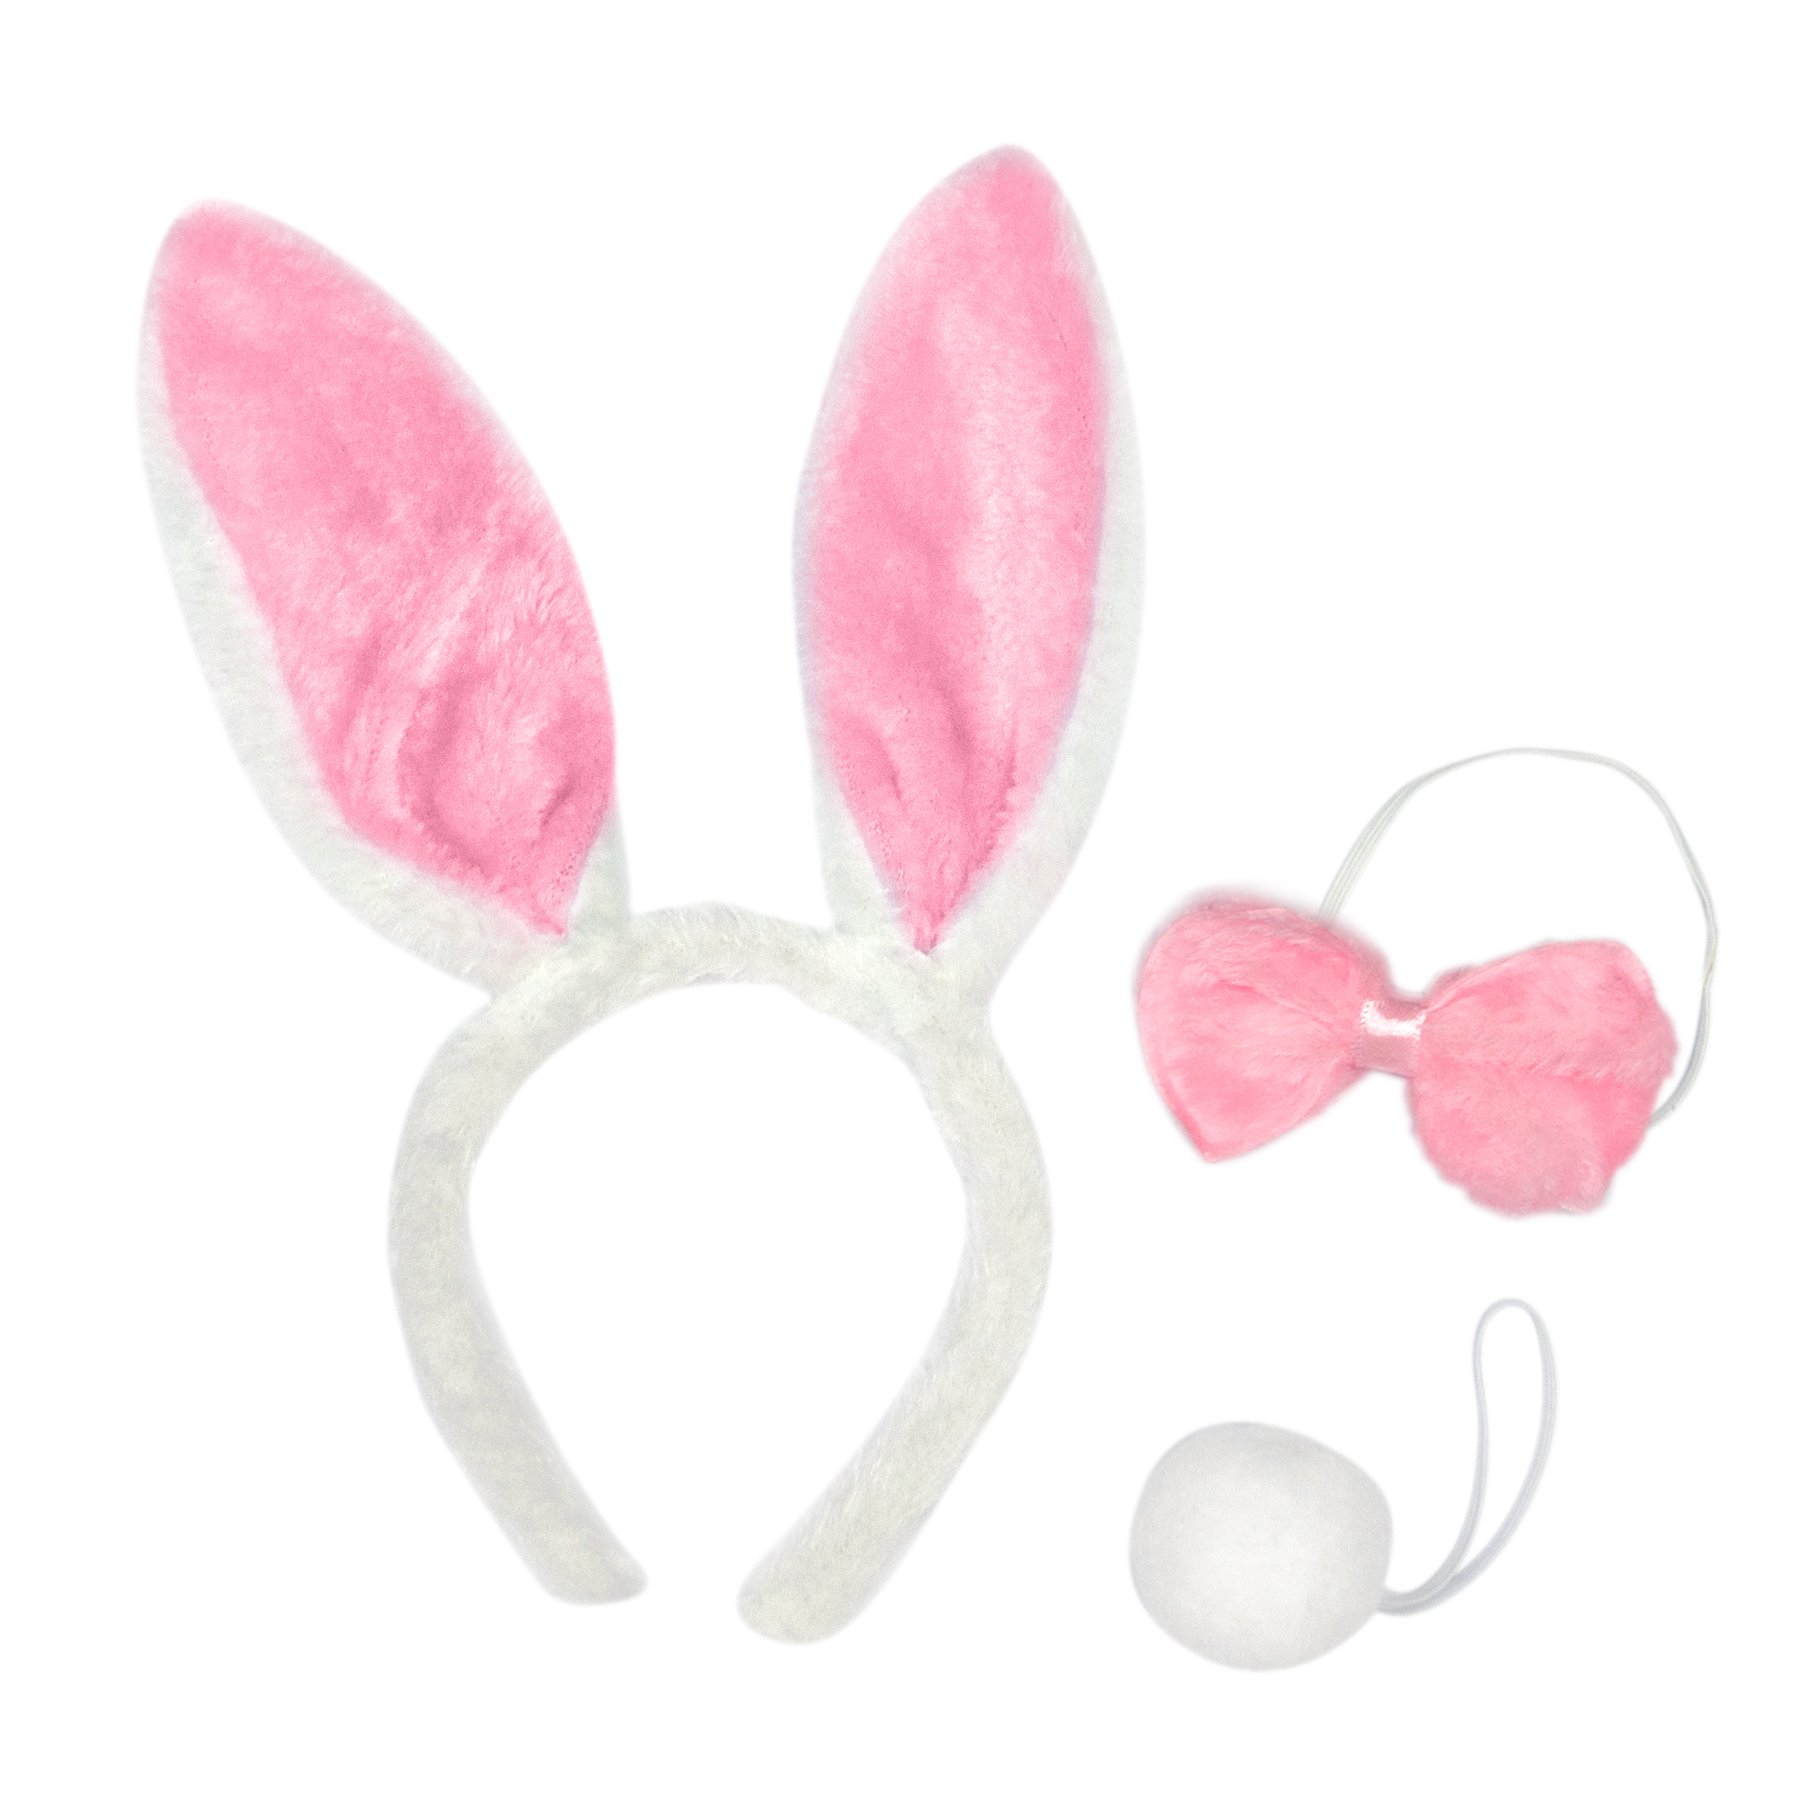 Toptie Wholesale Set of 3 Bunny Ears Headband, Soft Touch Plush Party Accessory-Pink-120Sets